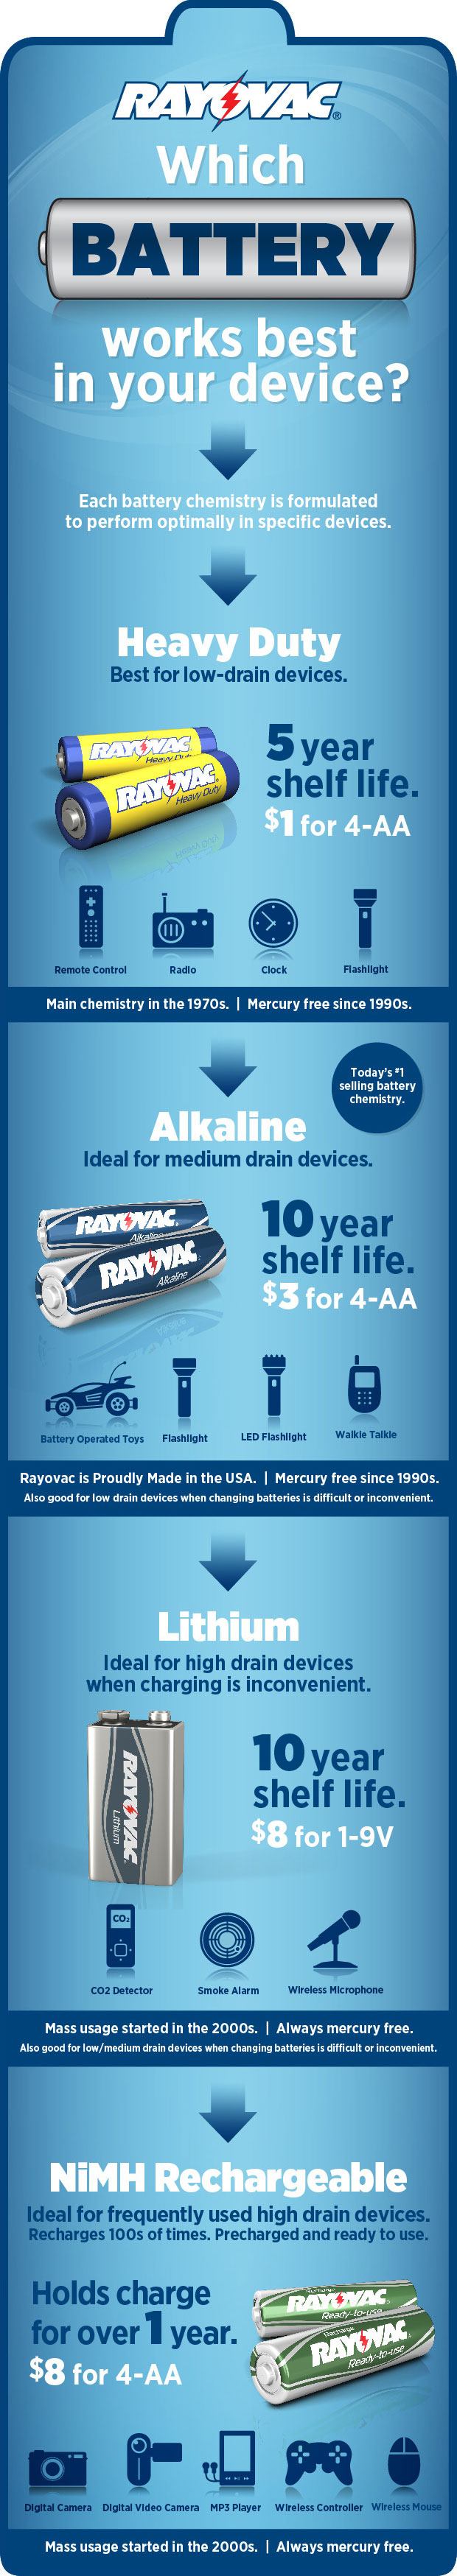 Rayovac Battery Education Guide